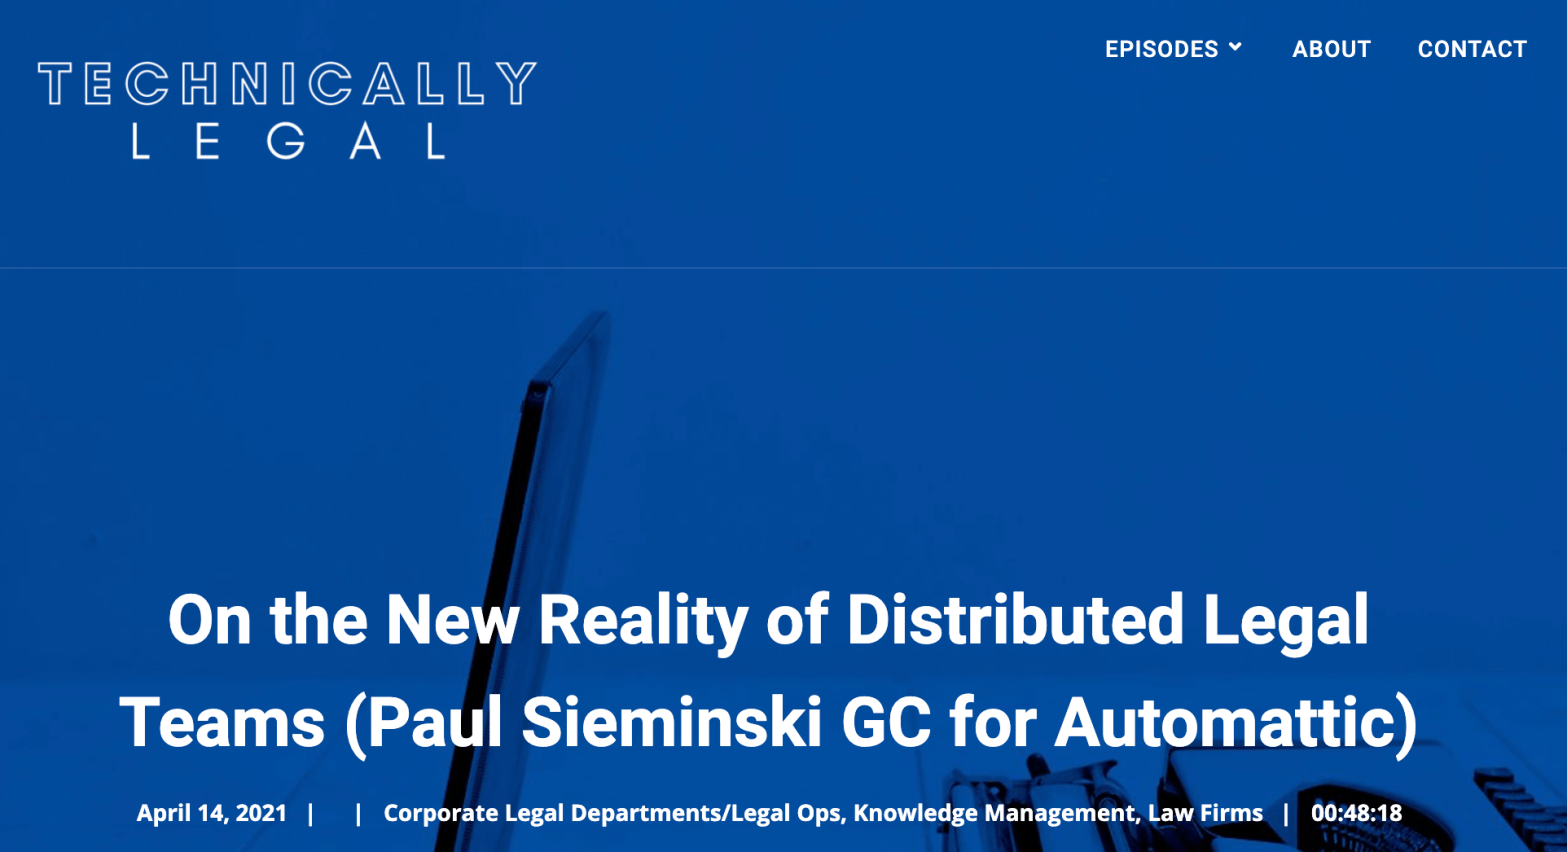 Getting Legal Work Done in a Distributed Environment: Paul Sieminski with Chad Main on Technically Legal